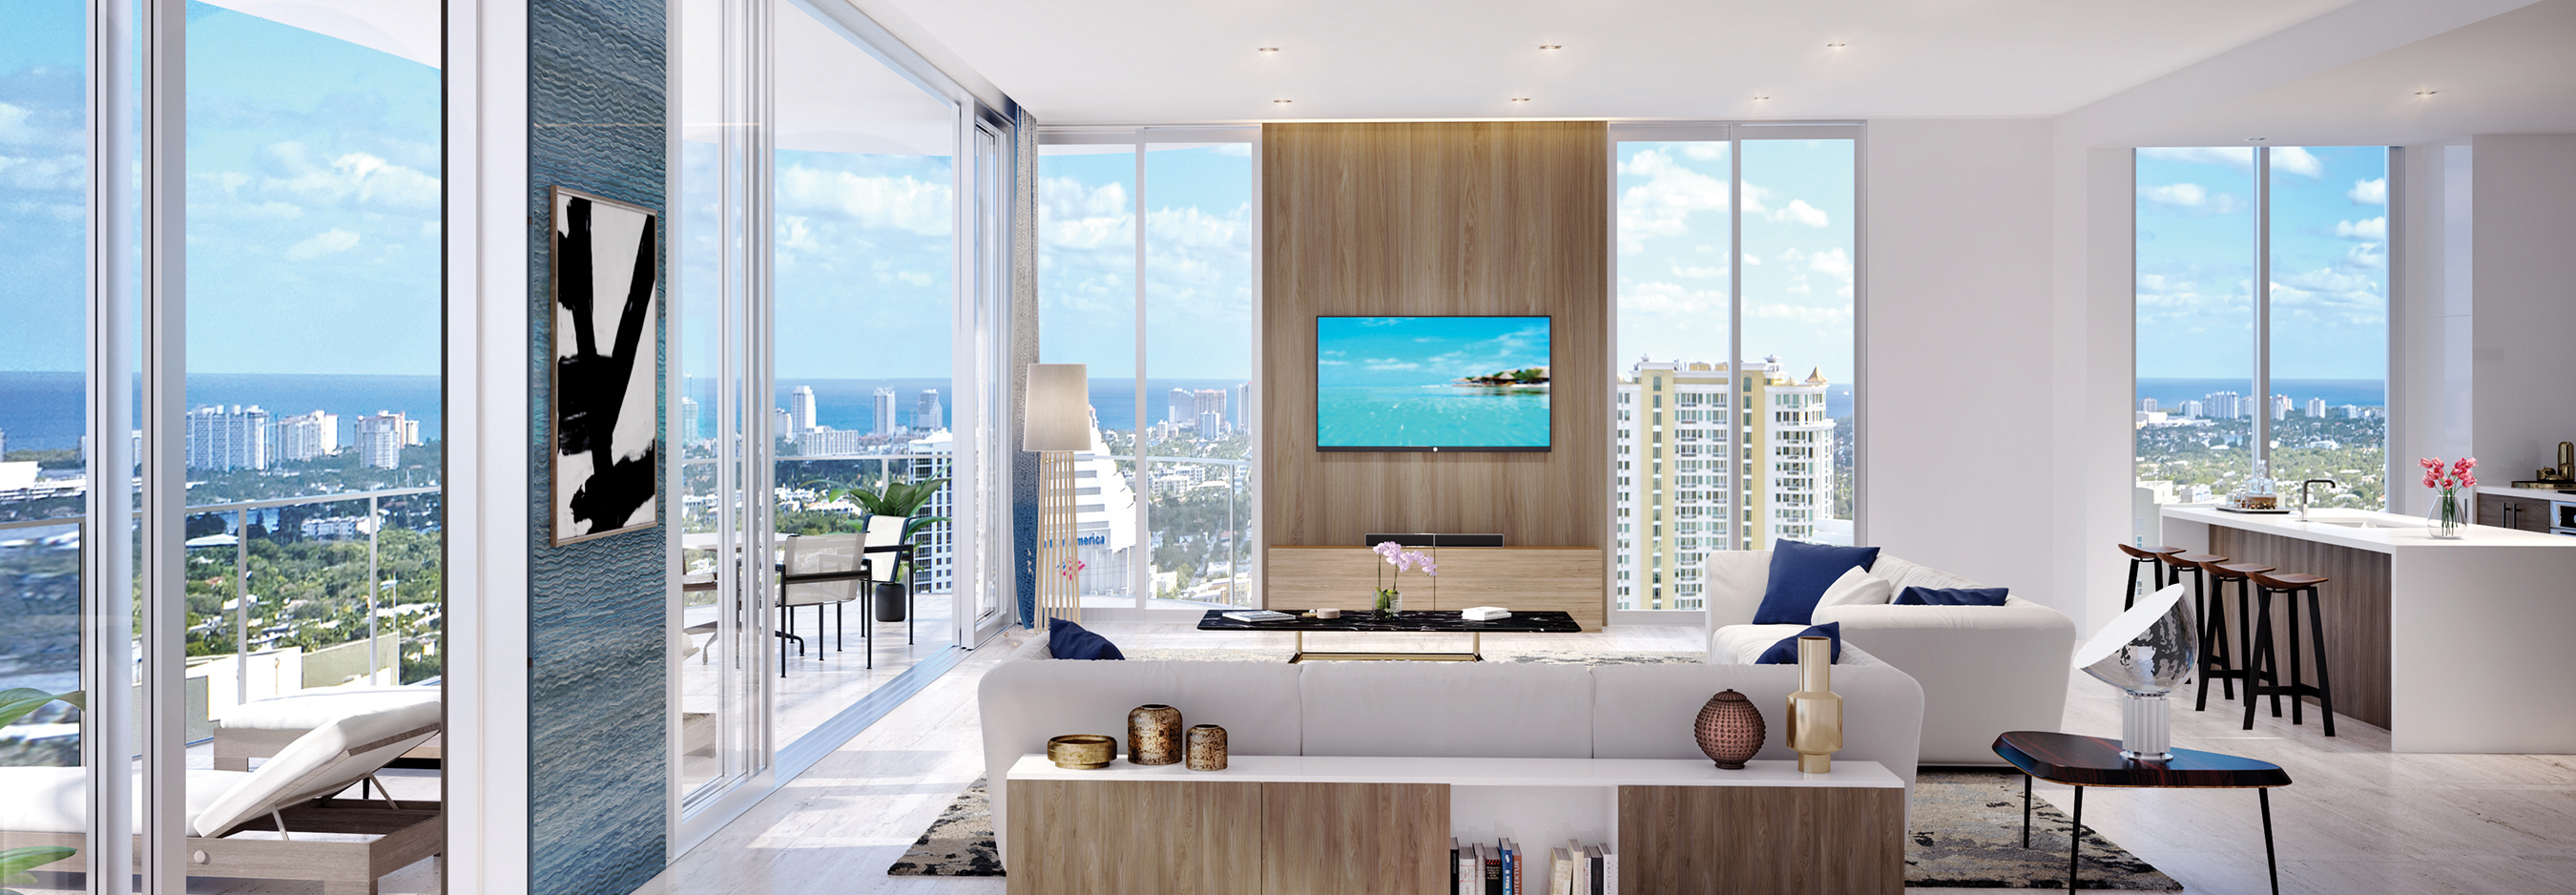 100 Las Olas Estate Penthouse Interior Great Room Day Rendering